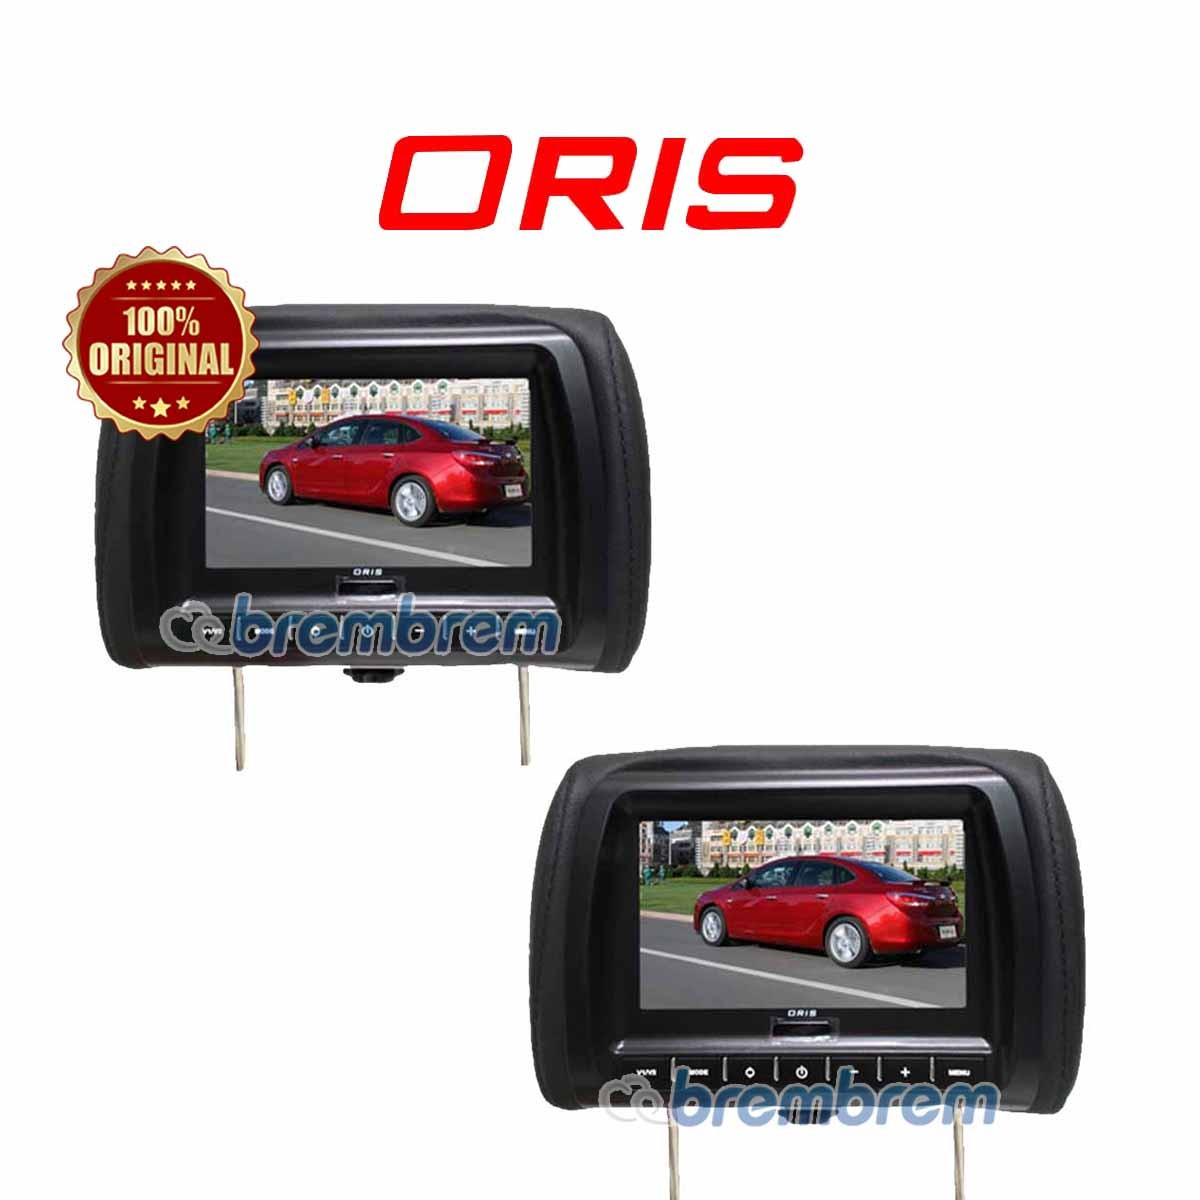 ORIS MTP 7100 BLACK - HEADREST MONITOR